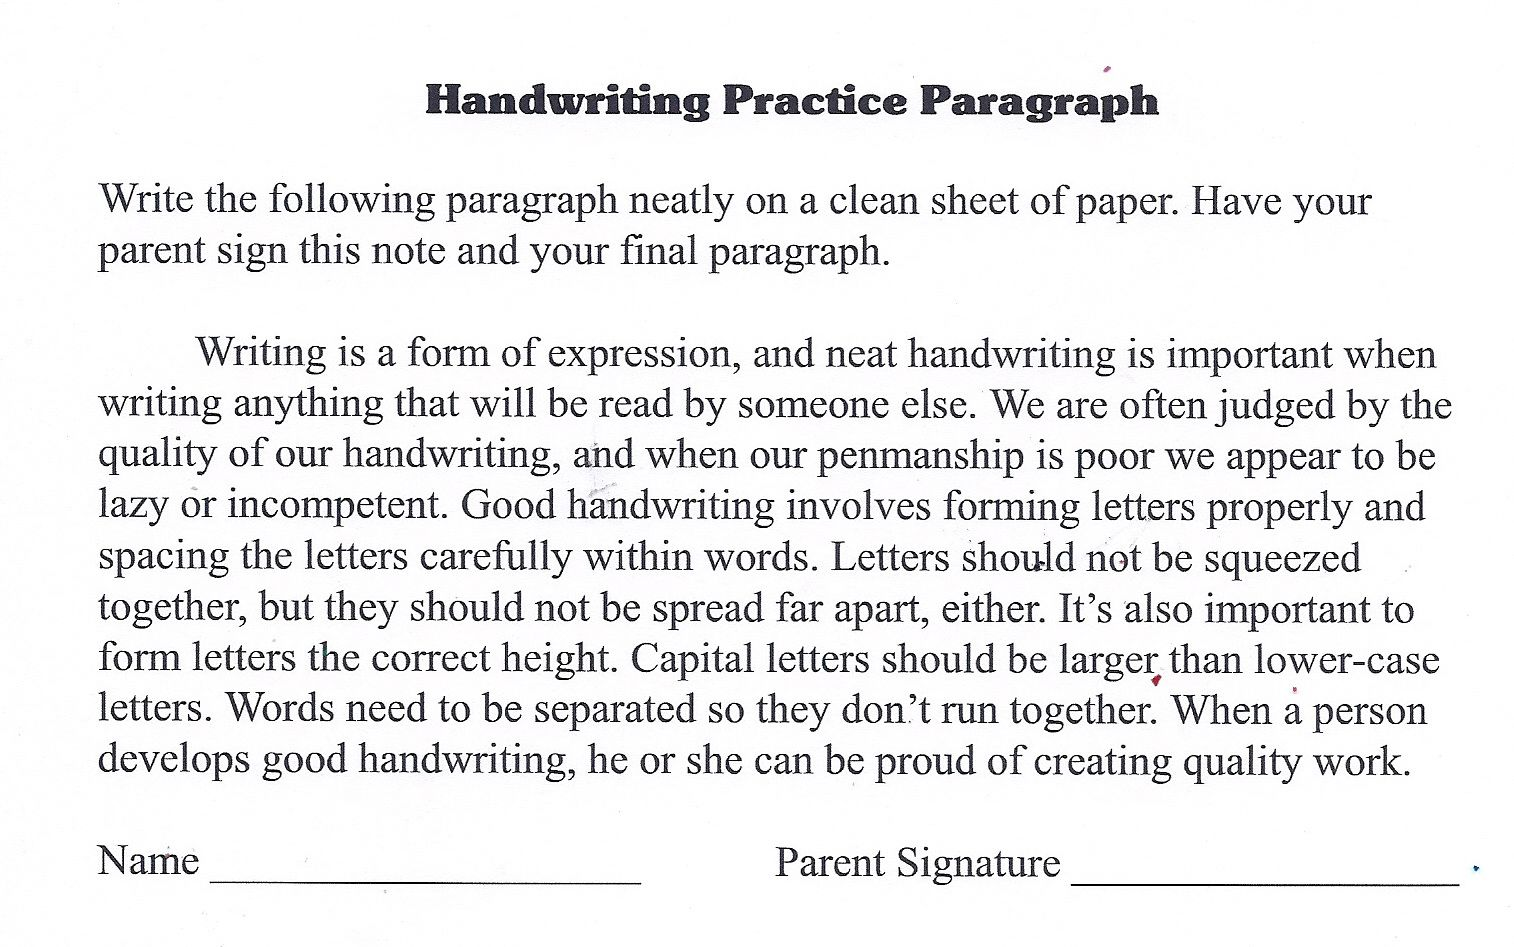 Handwriting Practice Paragraph I Found This On Uracandler